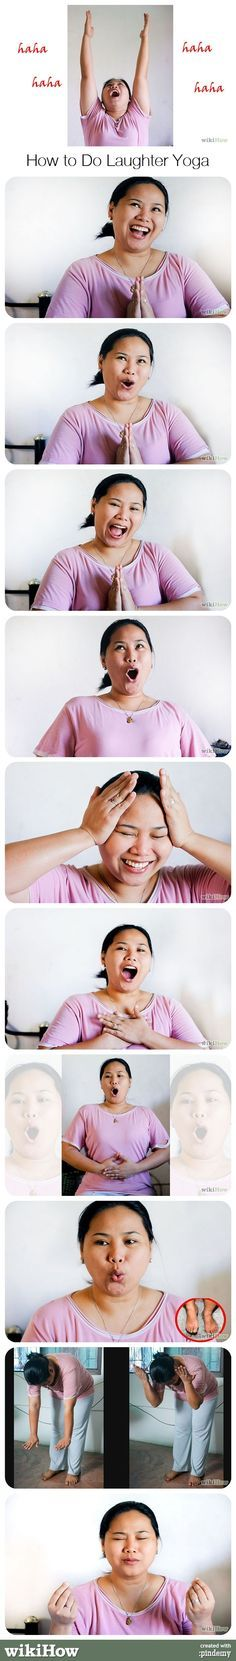 How to Do Laughter Yoga